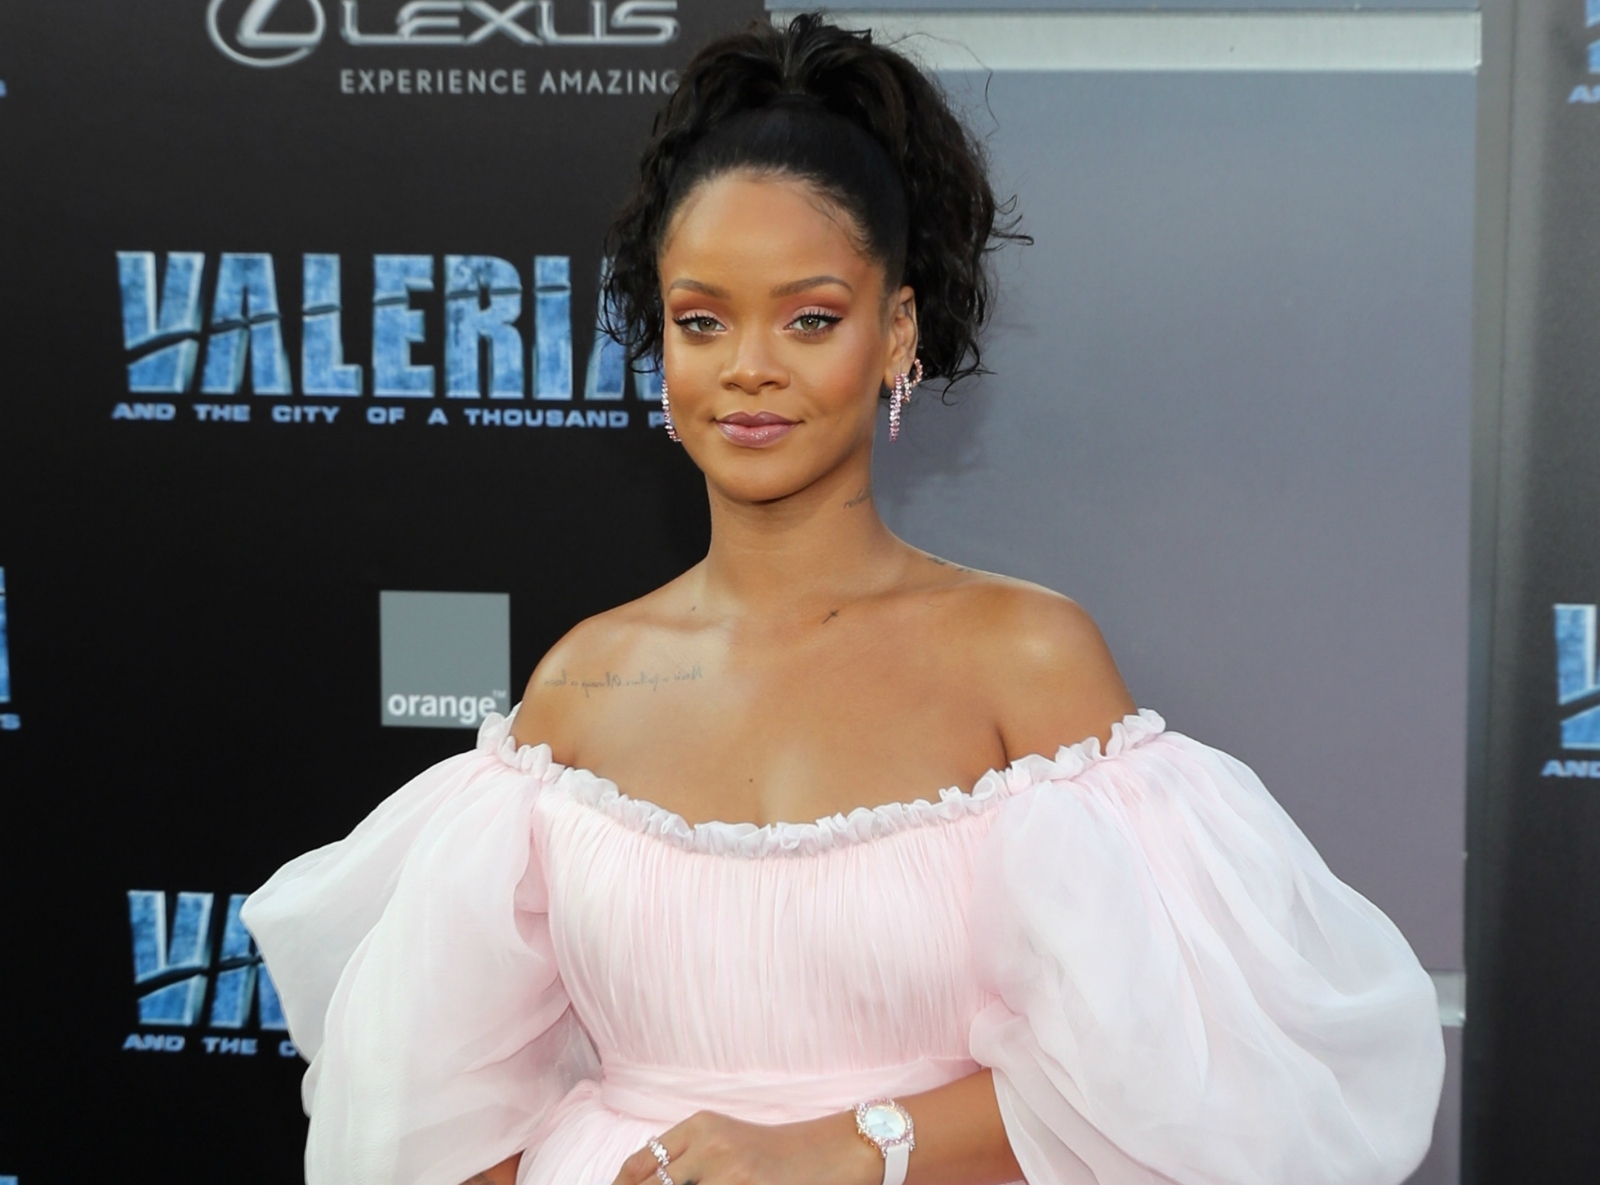 Chris Brown Commented on Rihanna's Sizzling Instagram Pics